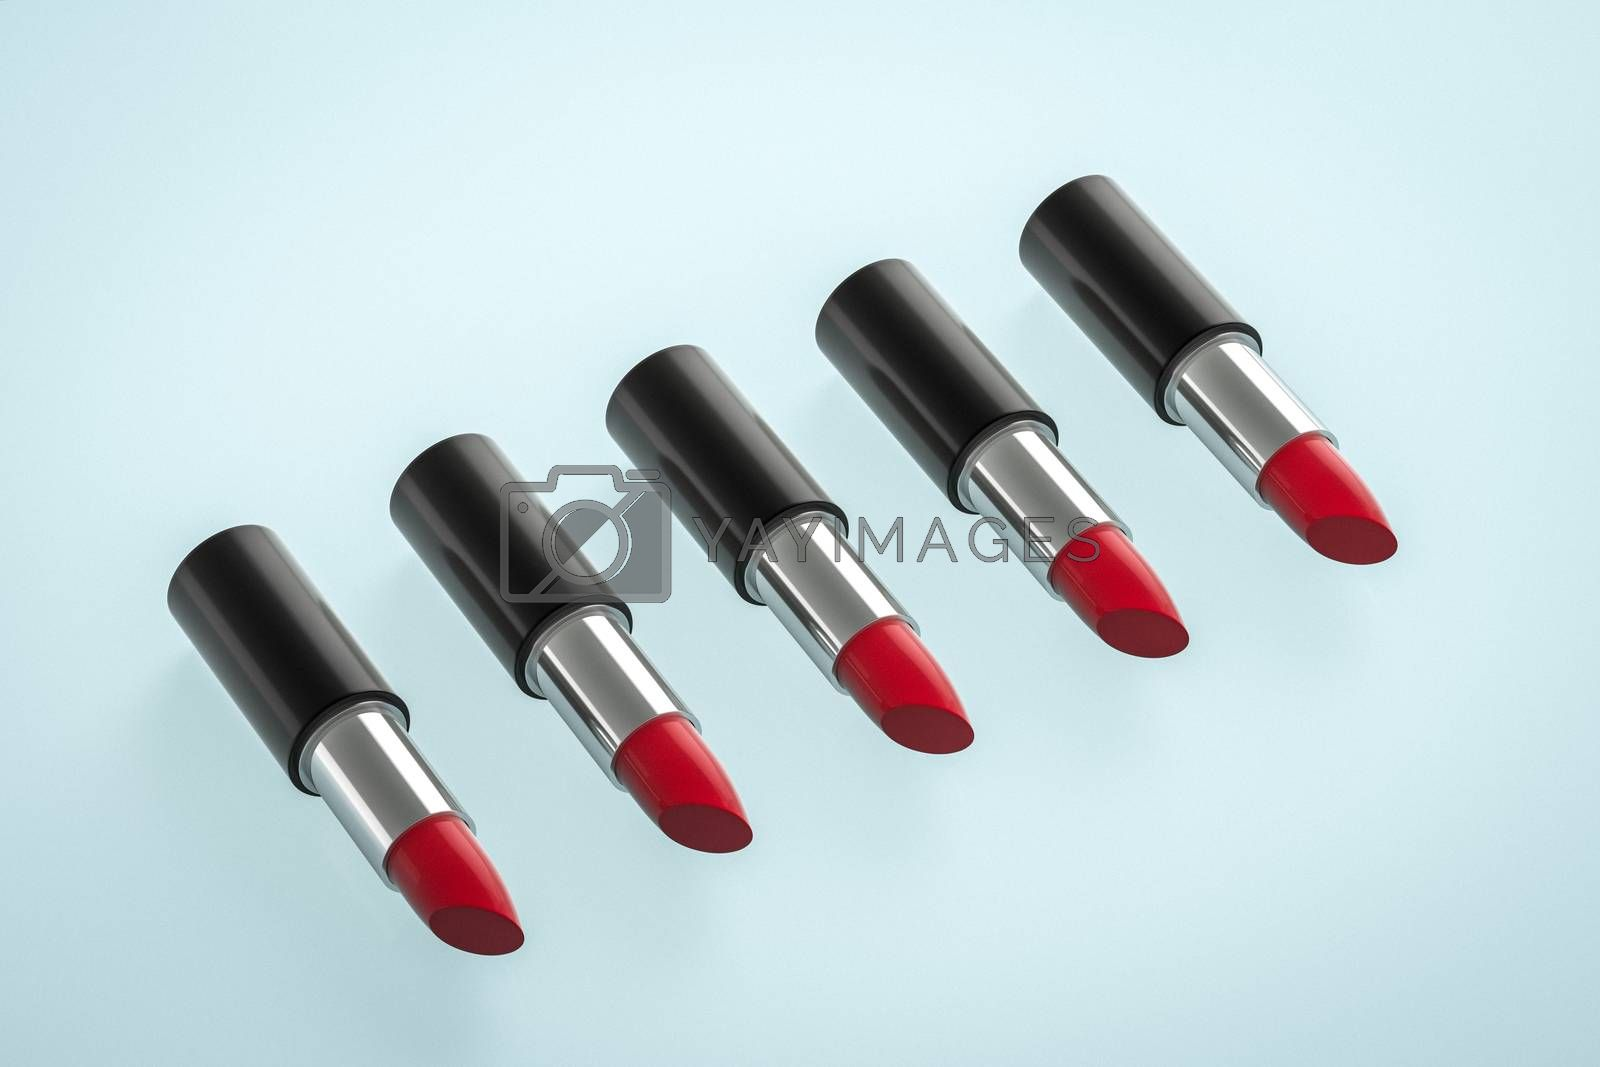 Lipstick with light color background, product photography, 3d rendering. by vinkfan